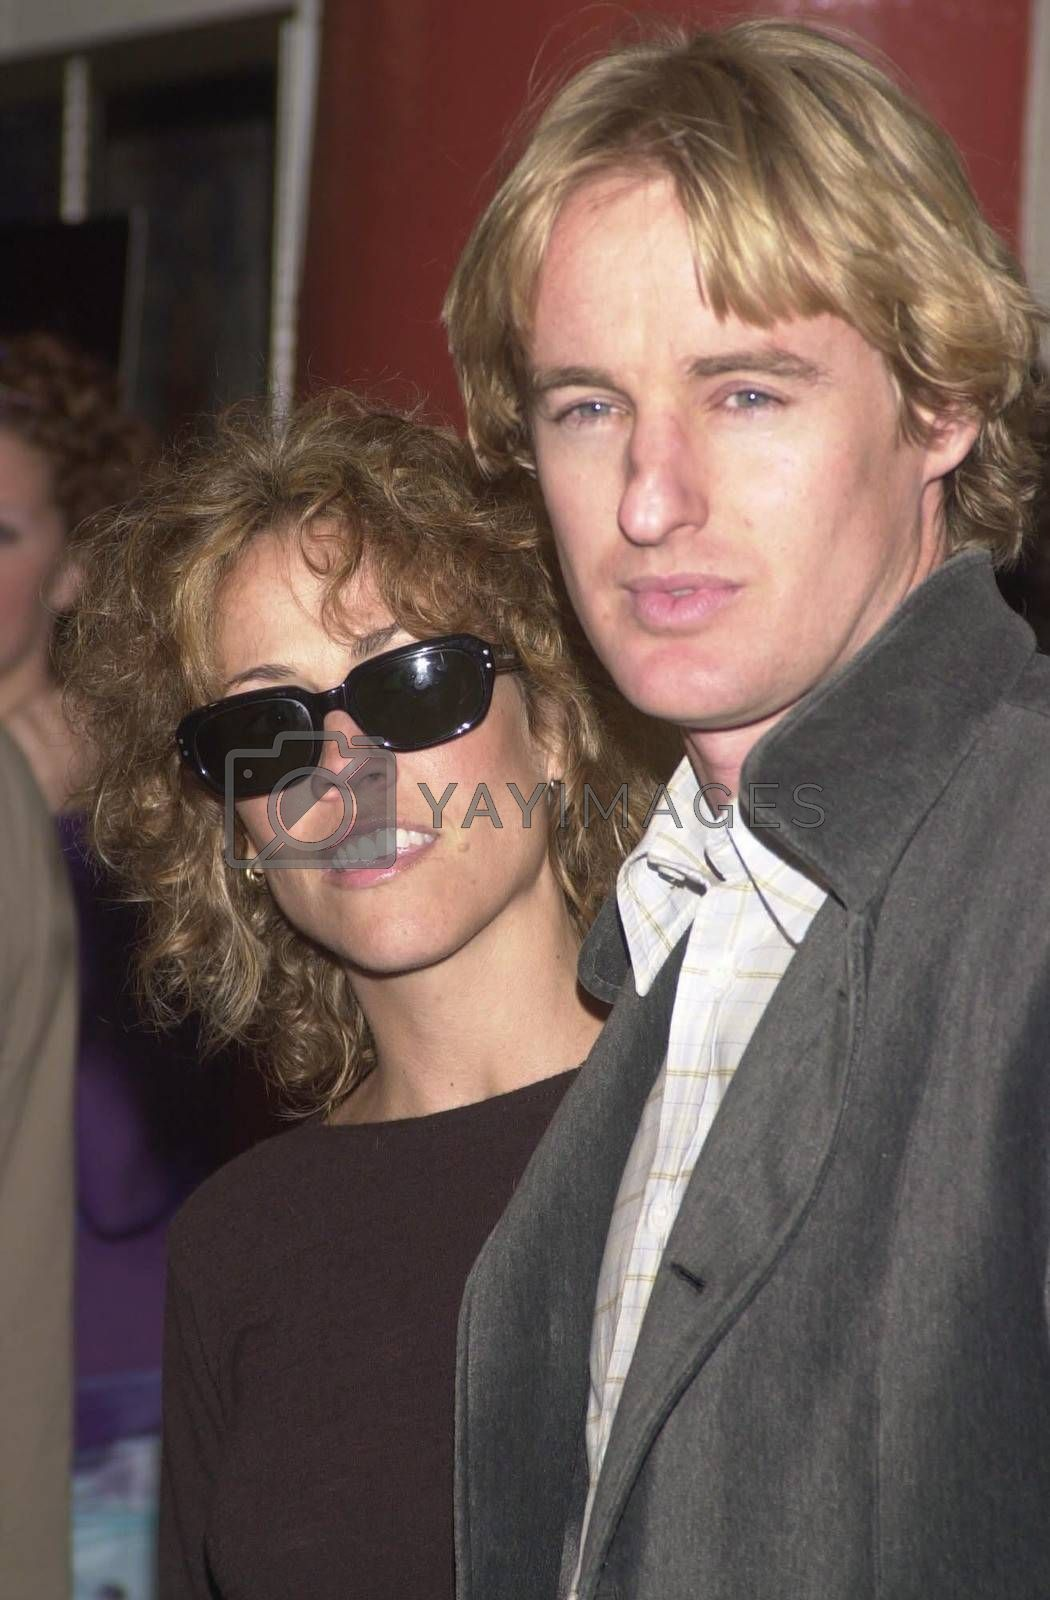 """Sheryl Crow and Owen Wilson at the premiere of Miramax's """"COMMITTED"""" in Westwood, 04-18-00"""